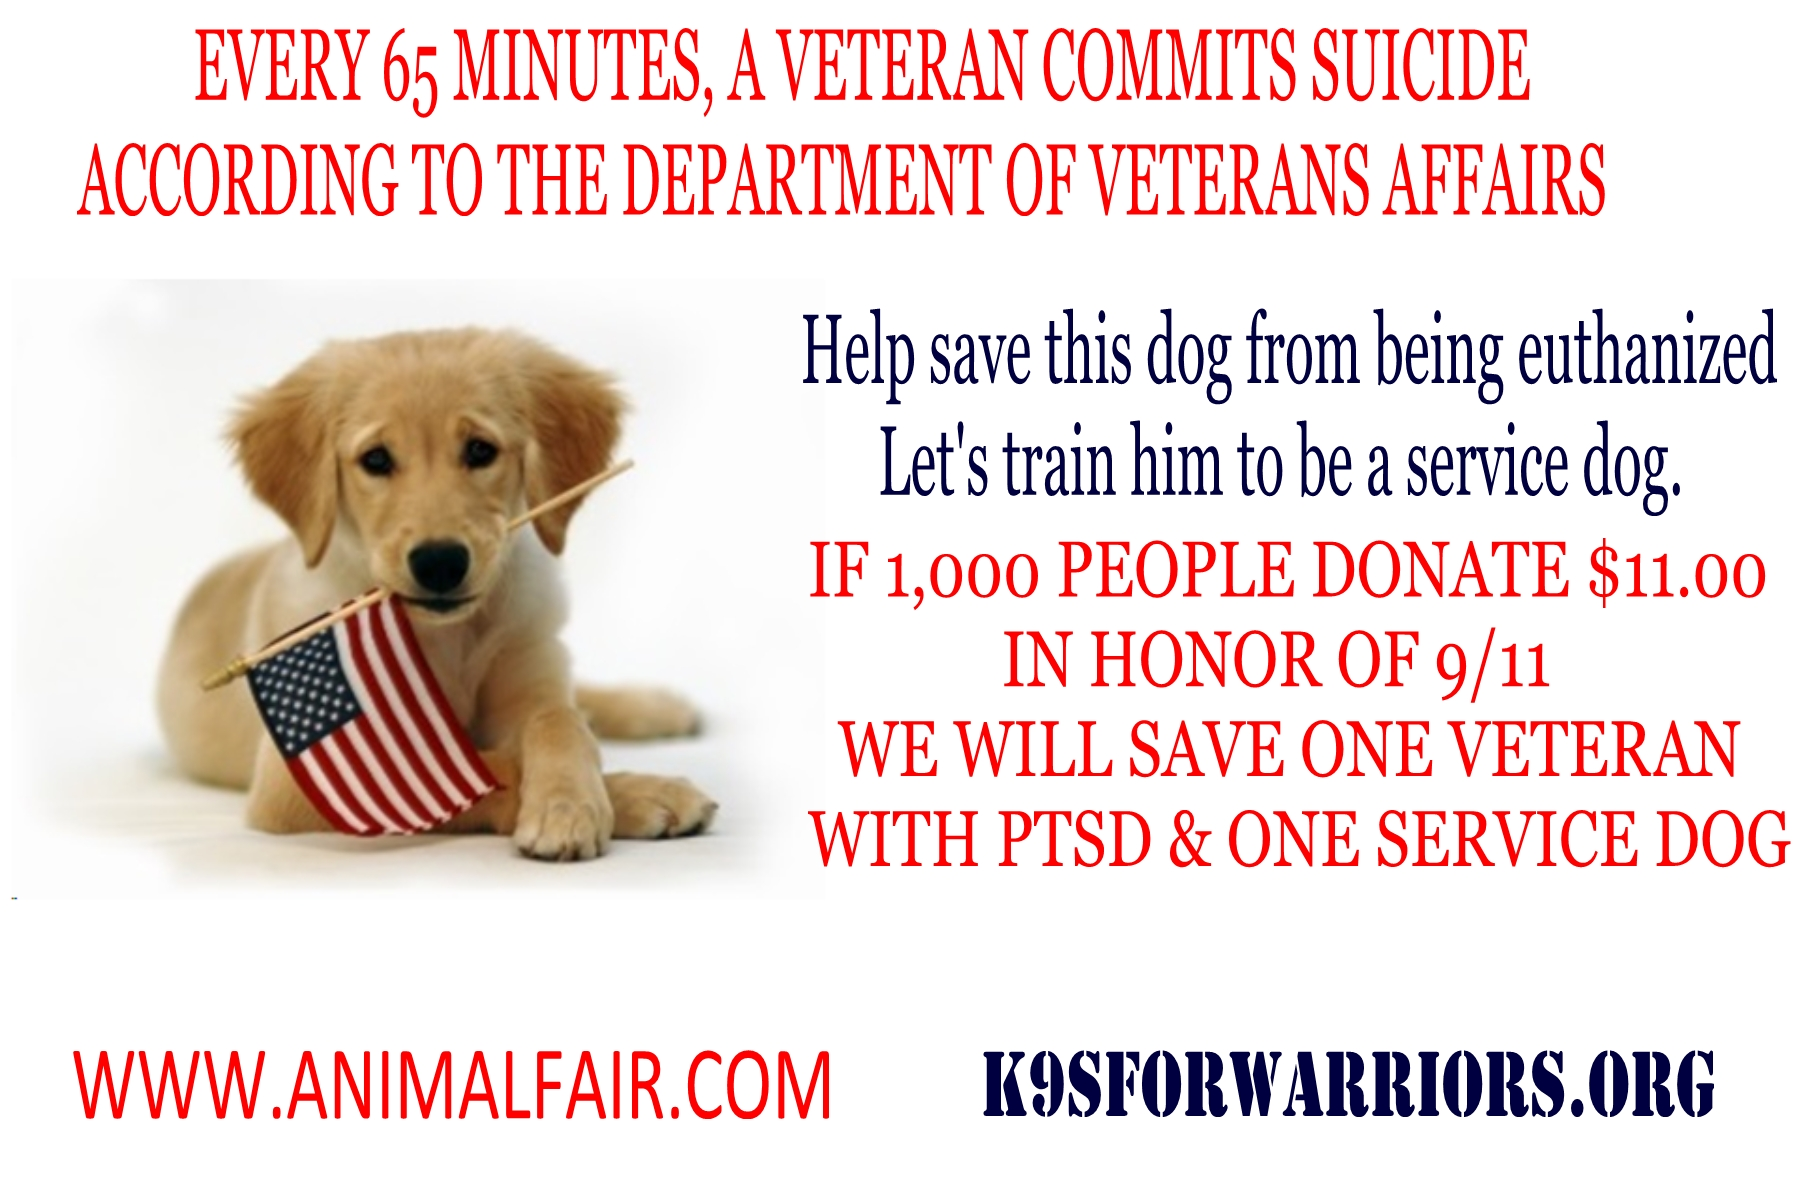 In Honor of 9/11 – Donate $11 To Make A Veteran's Dream Come True… @k9sforwarriors